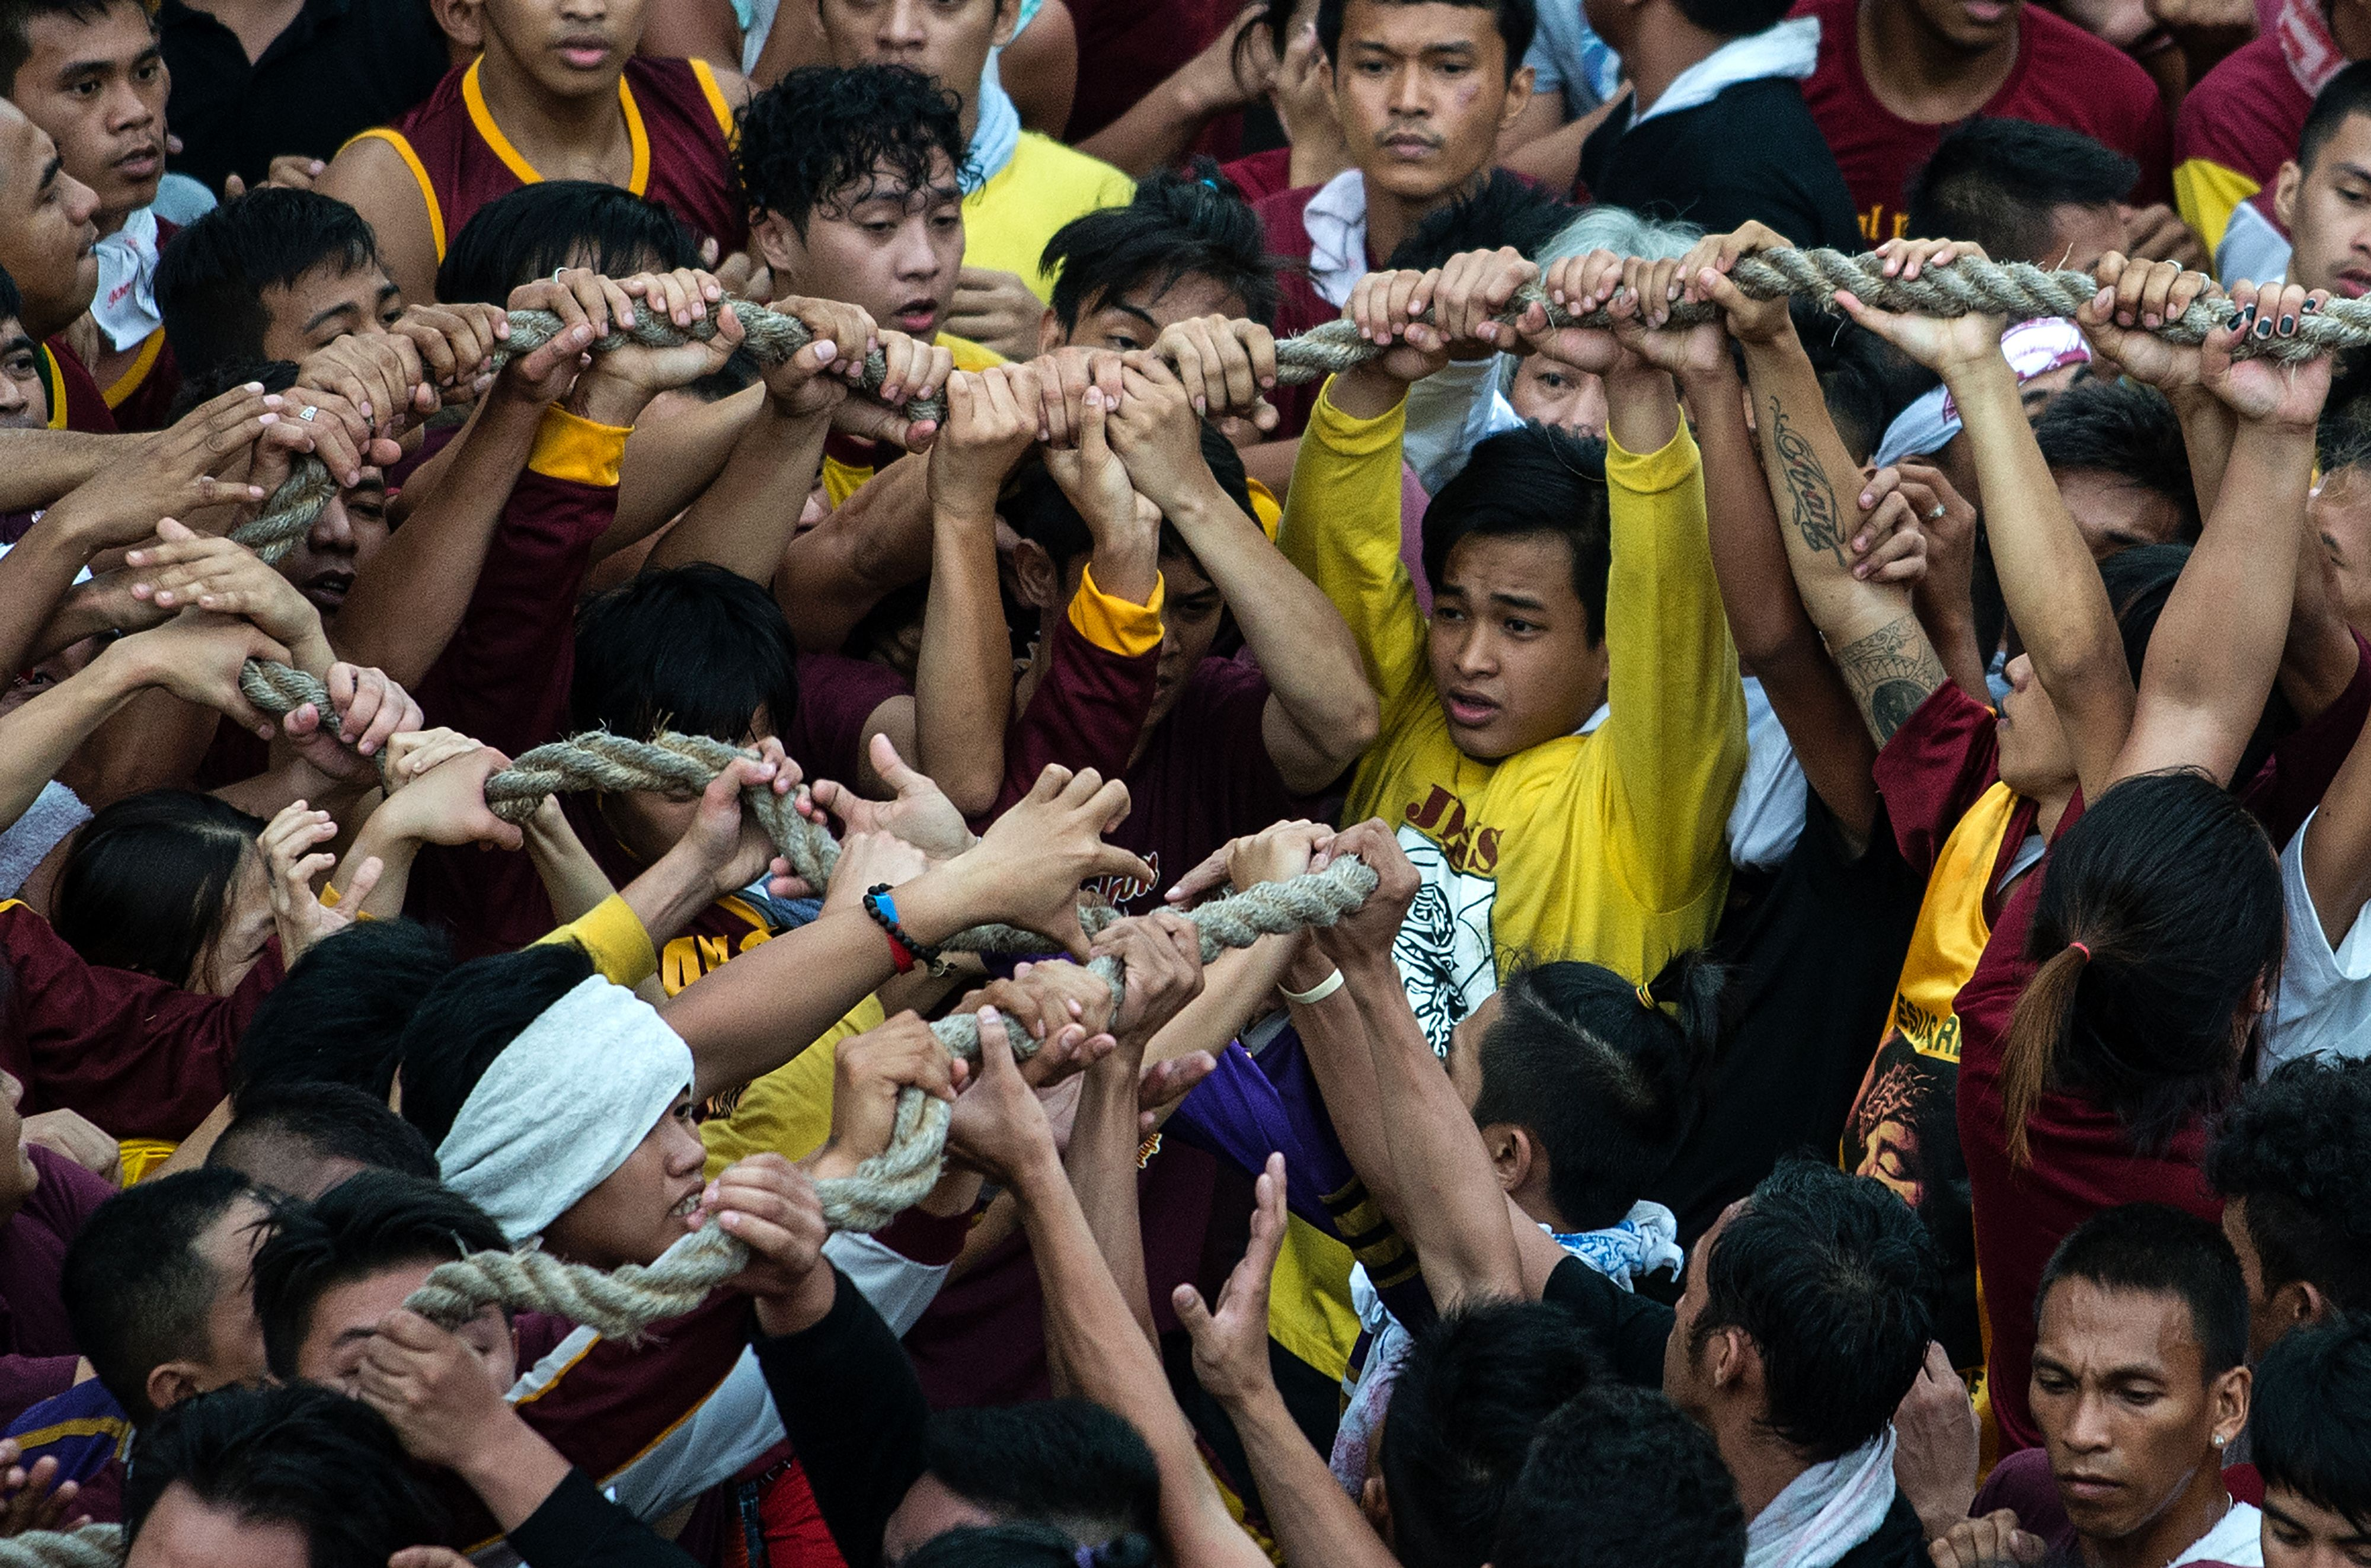 Devotees touch the rope used to pull the carriage carrying the life-size statue of the Black Nazarene on Jan. 9, 2017